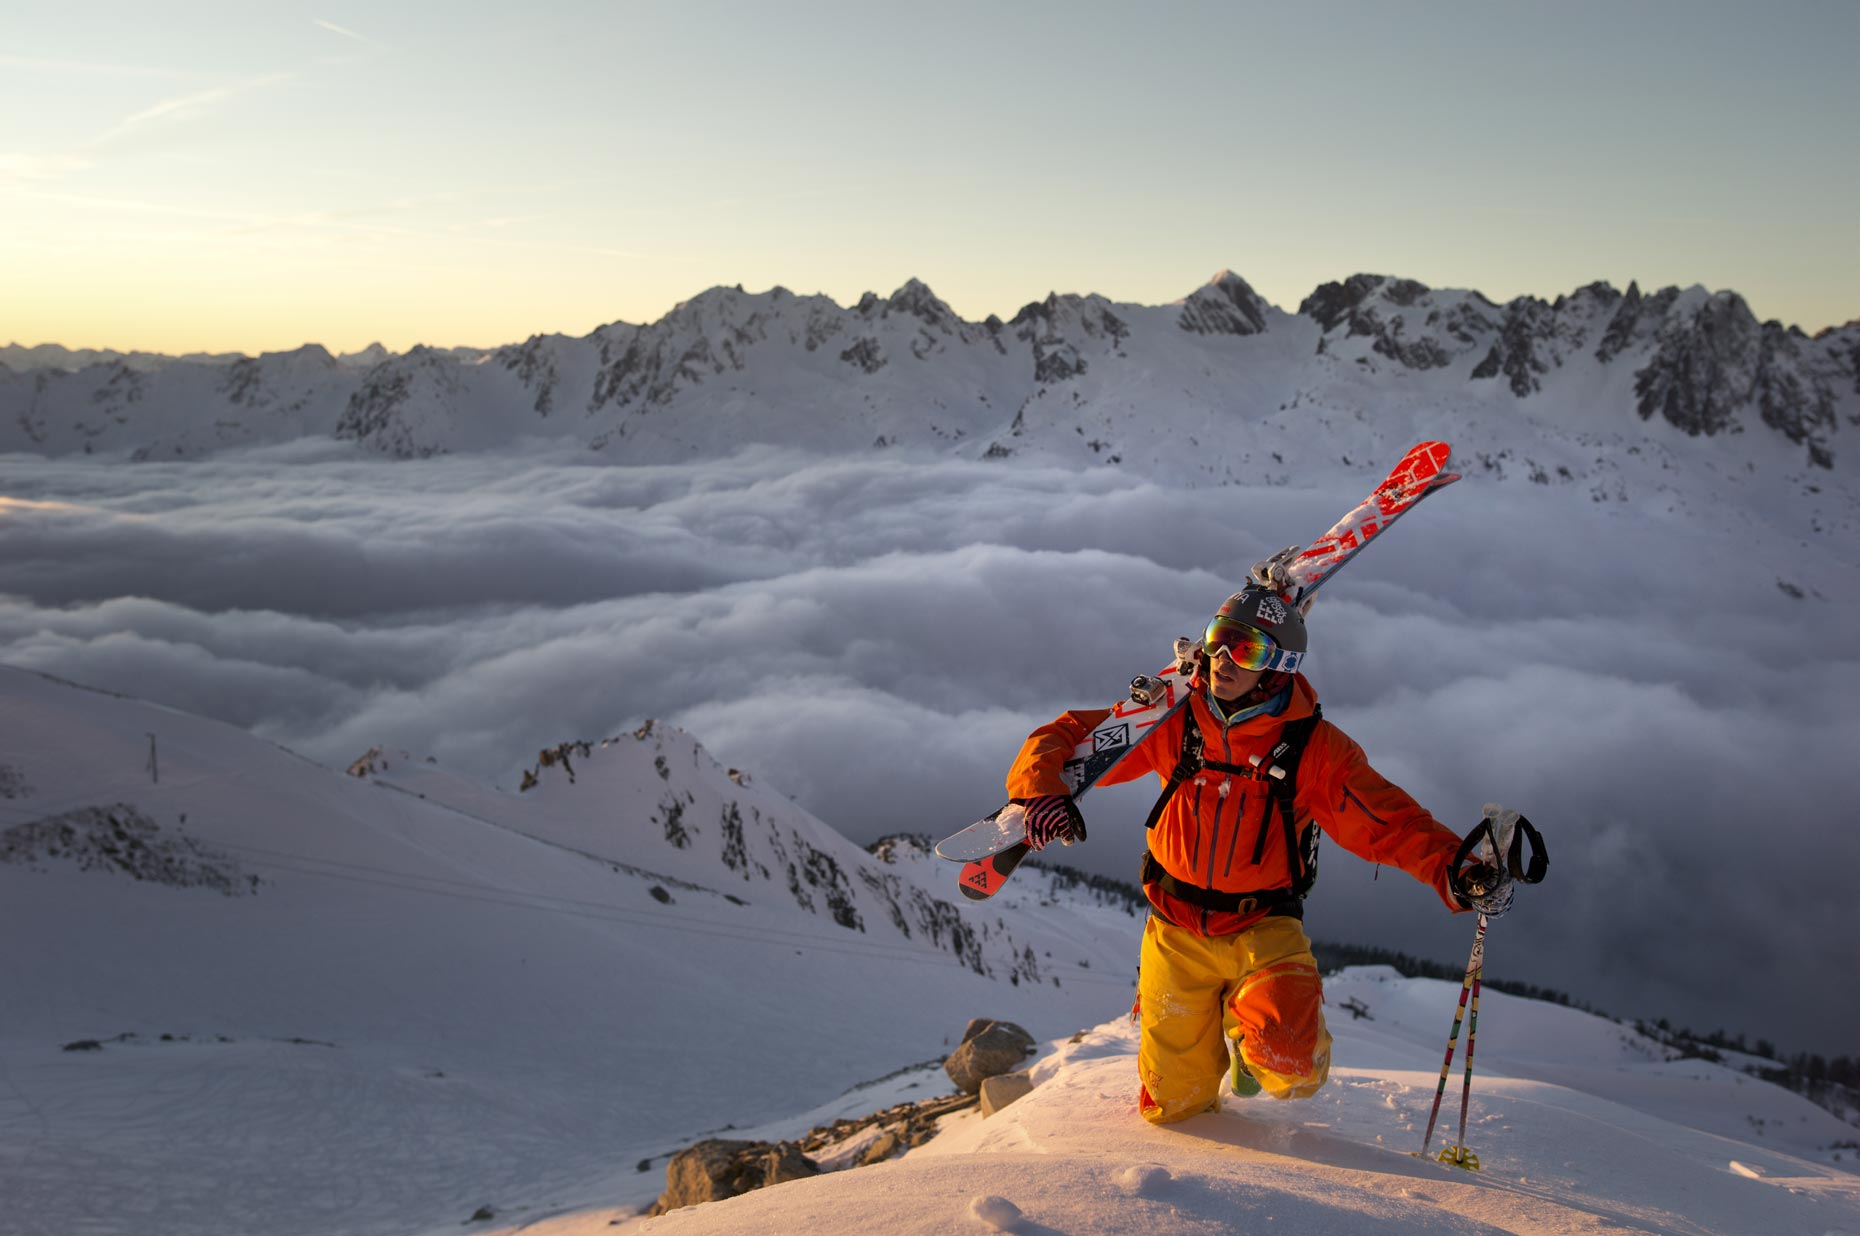 Reasons Why Every Skier Should Go Heli Skiing - Skiing Above the Clouds